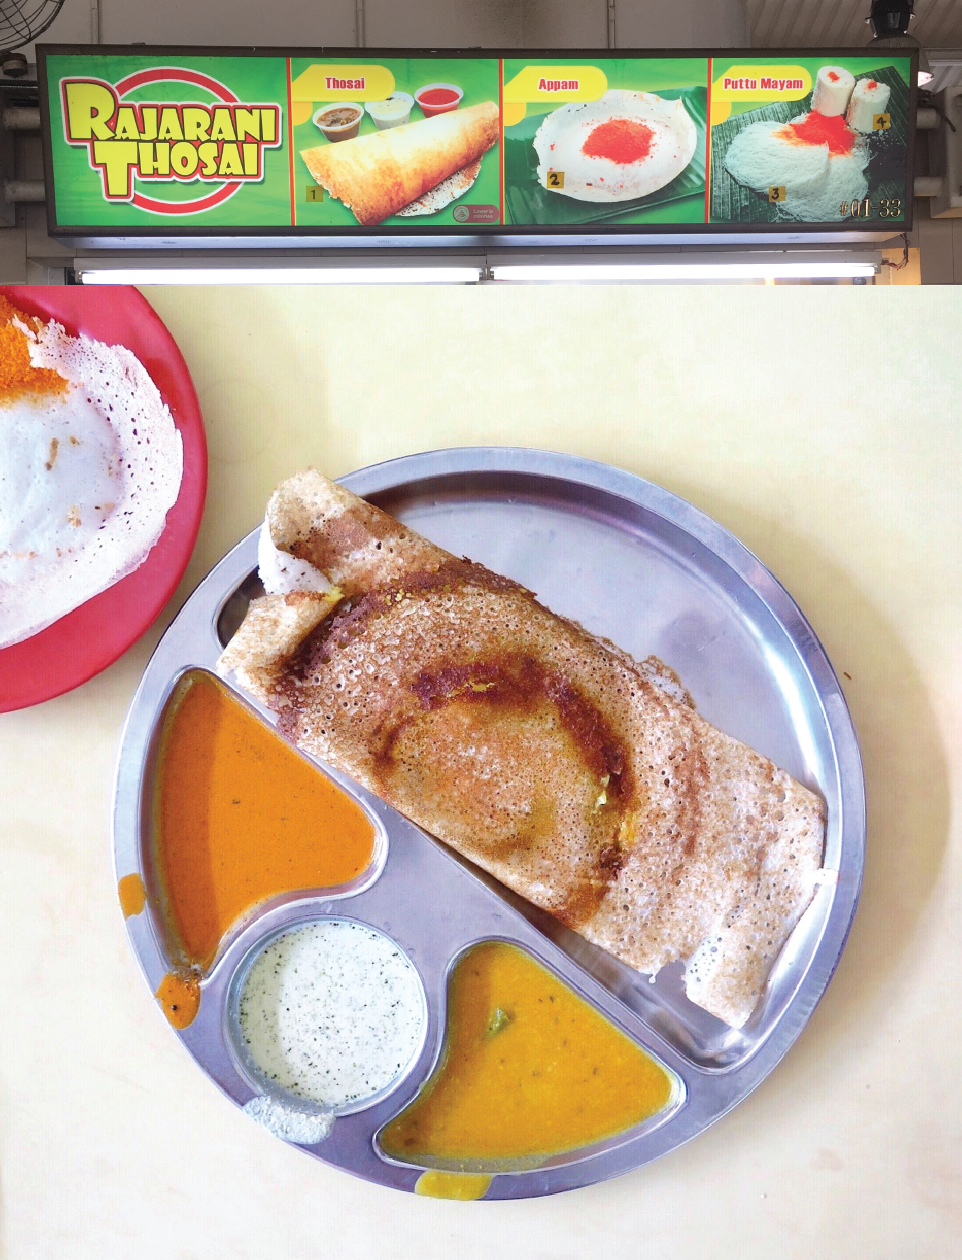 For Yummy Thosai and Appam